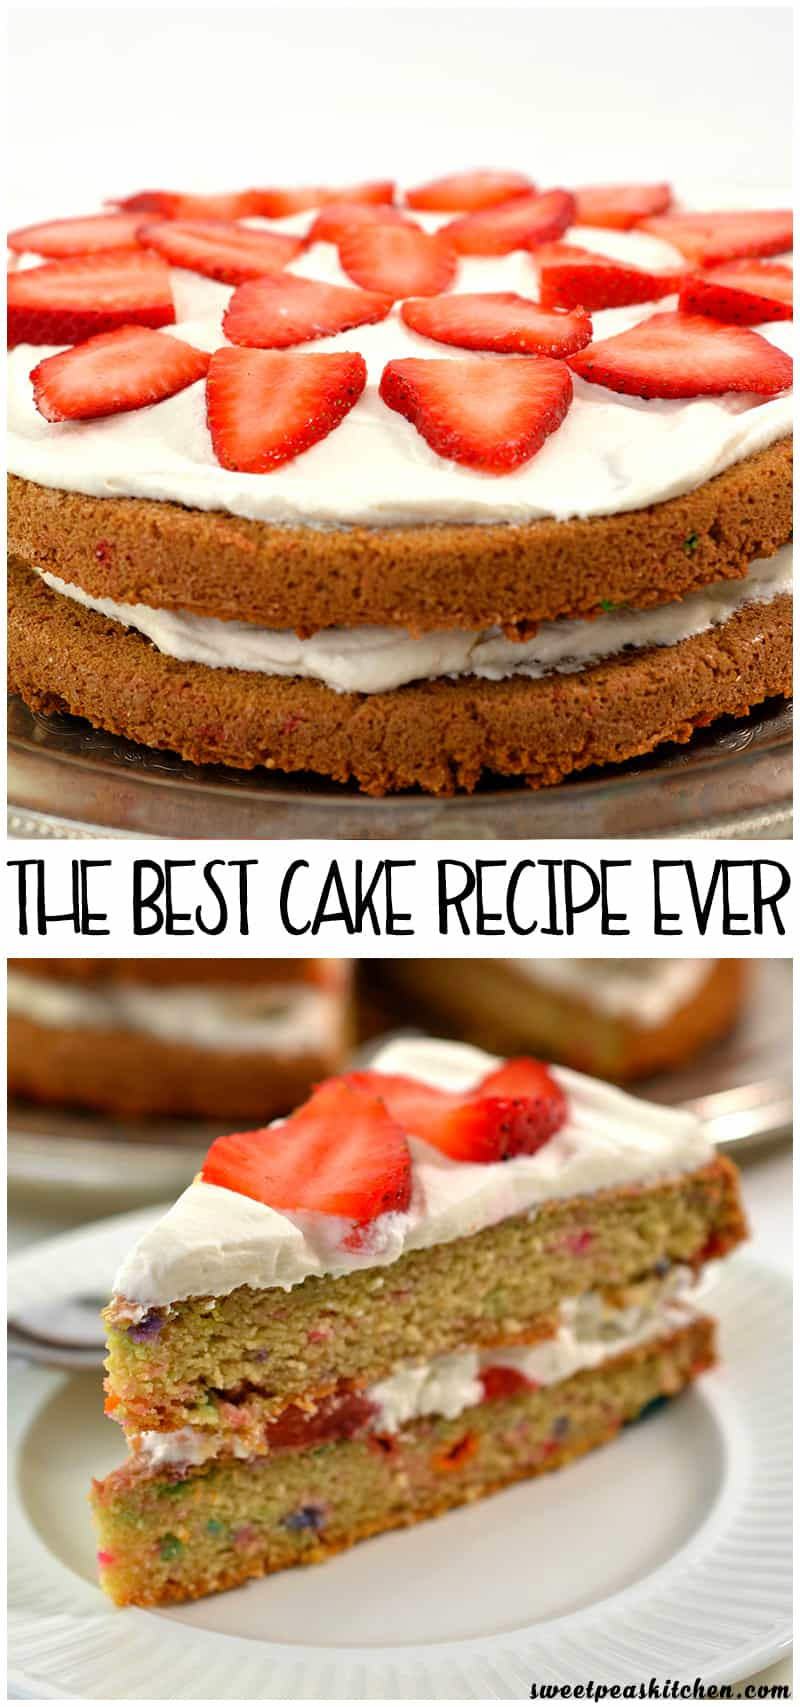 The Best Cake Recipe Ever